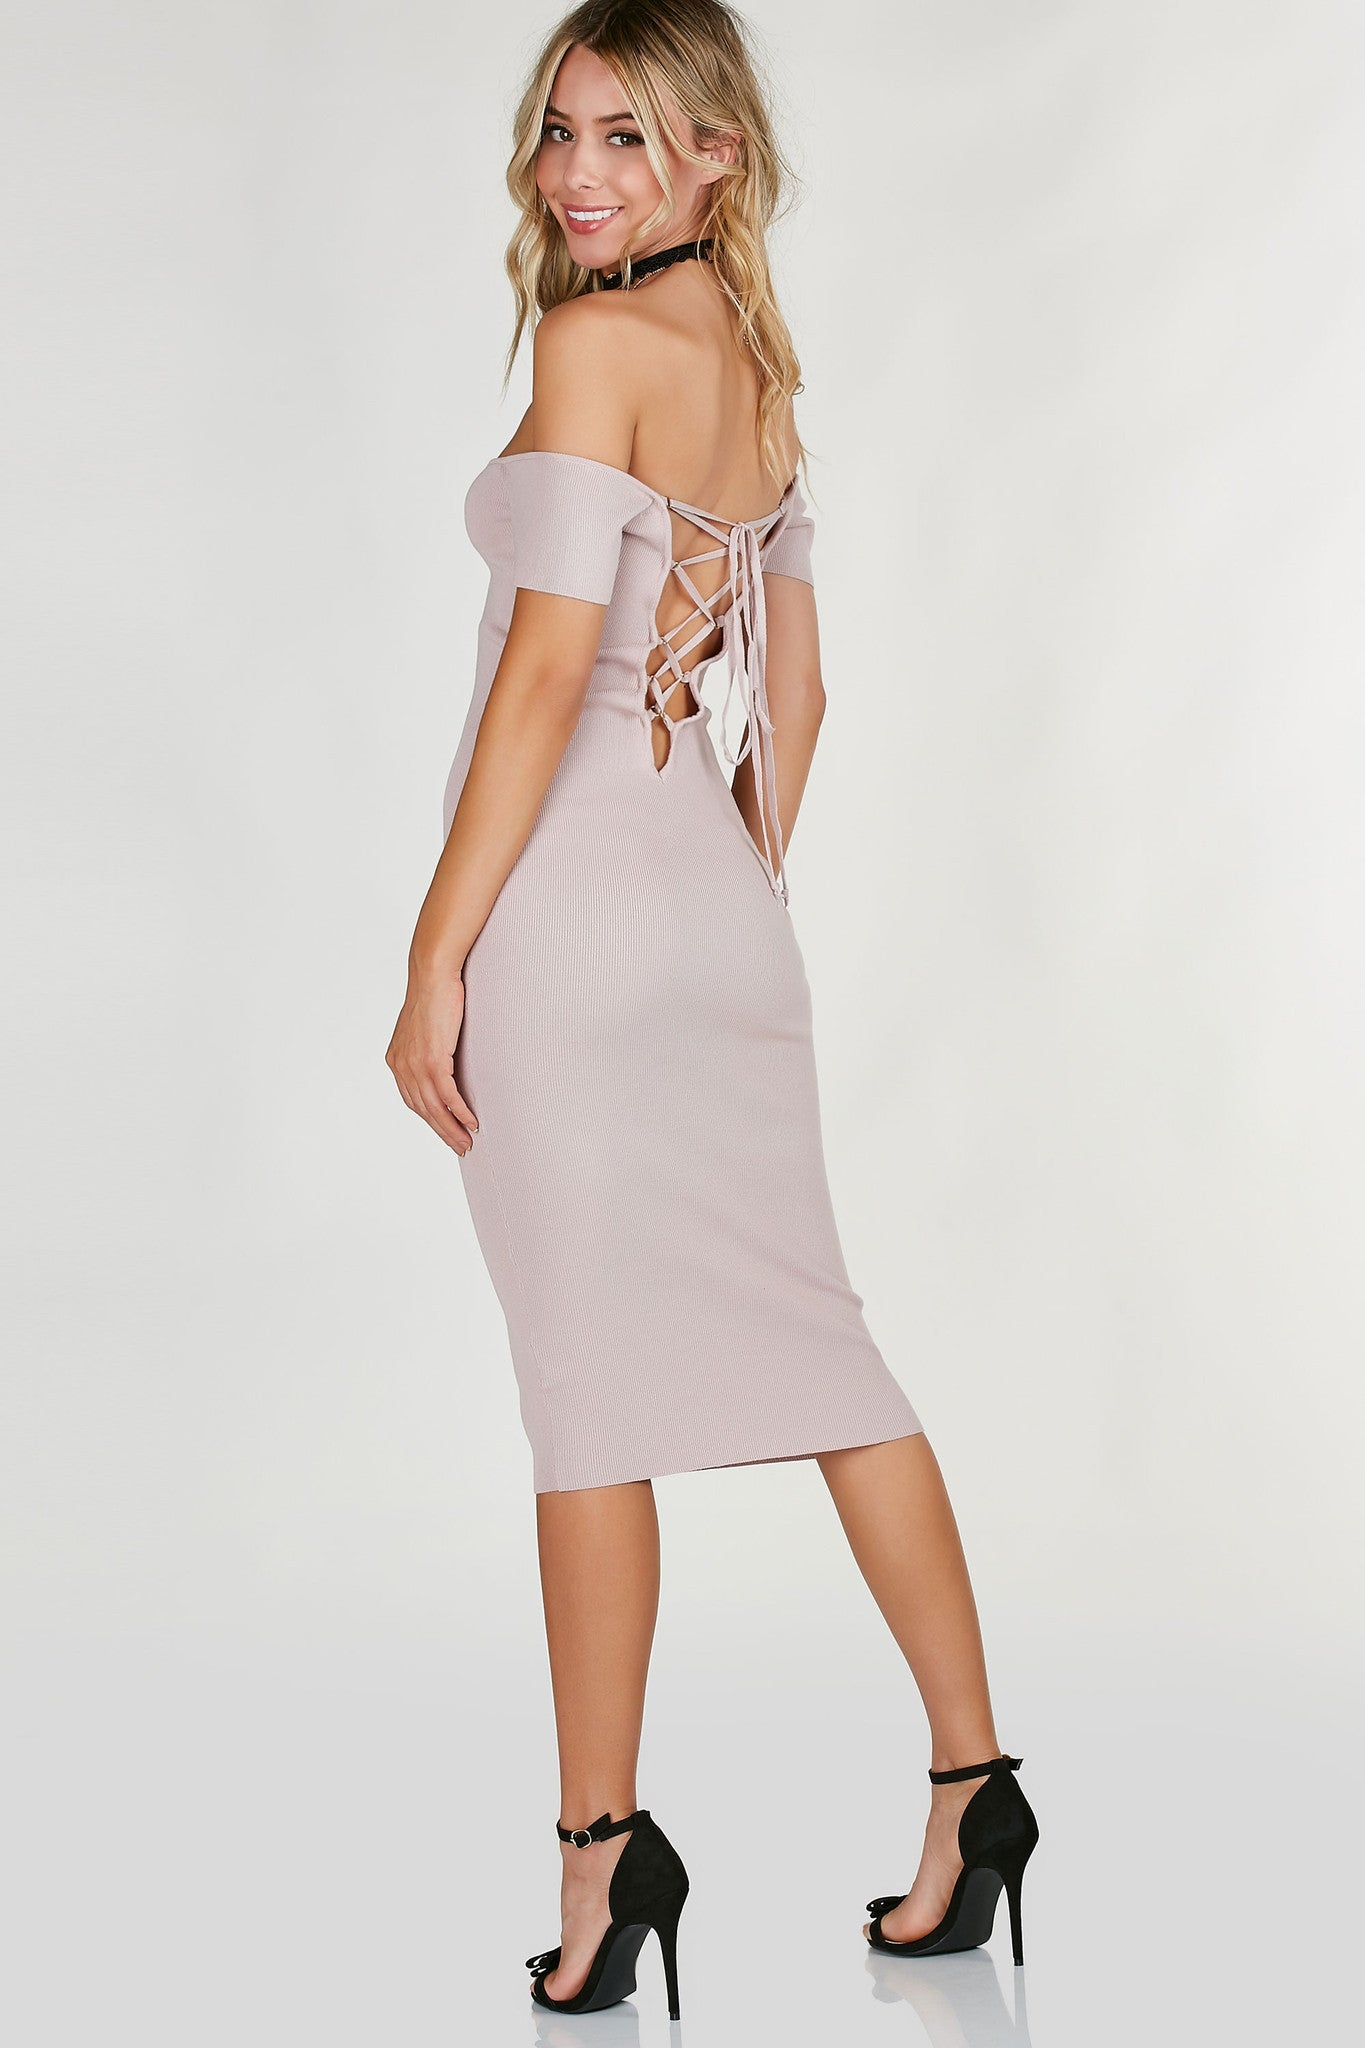 Ribbed boat neck midi dress with flattering fit all around. Sexy cut out back with lace up closure.